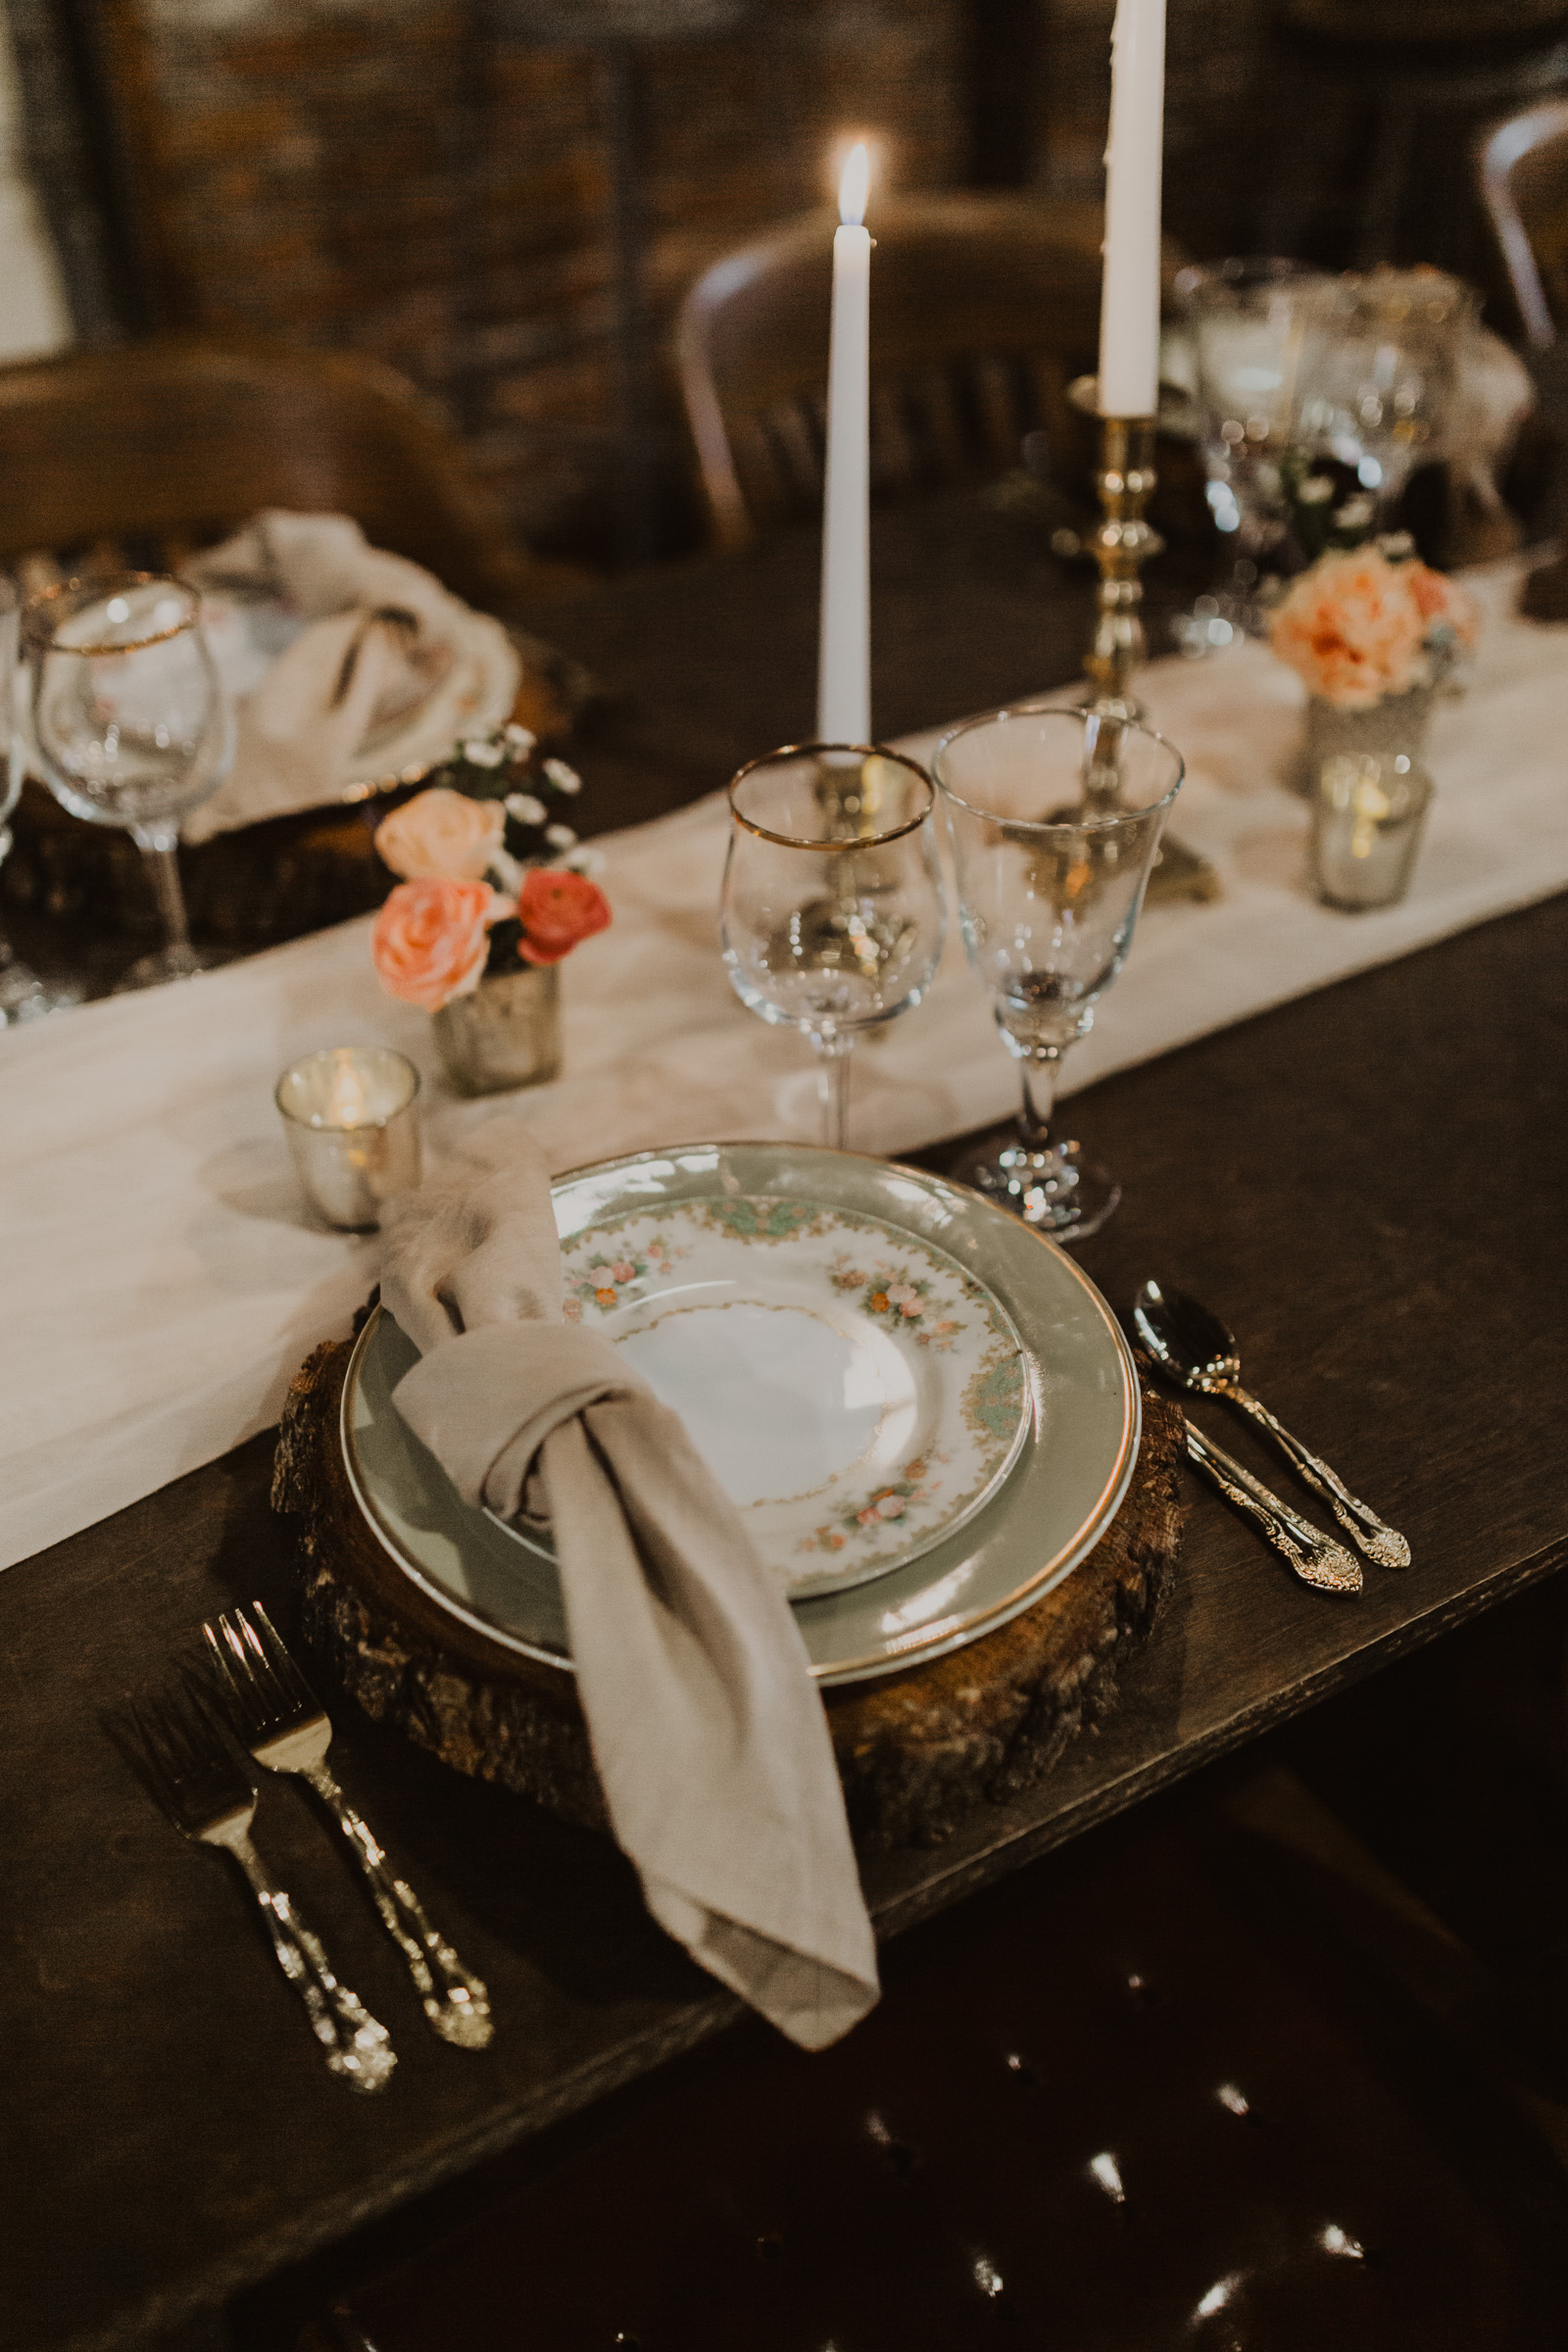 alyssa barletter photography styled shoot wedding inspiration kansas city west bottoms photographer motorcycle edgy intimate-12.jpg